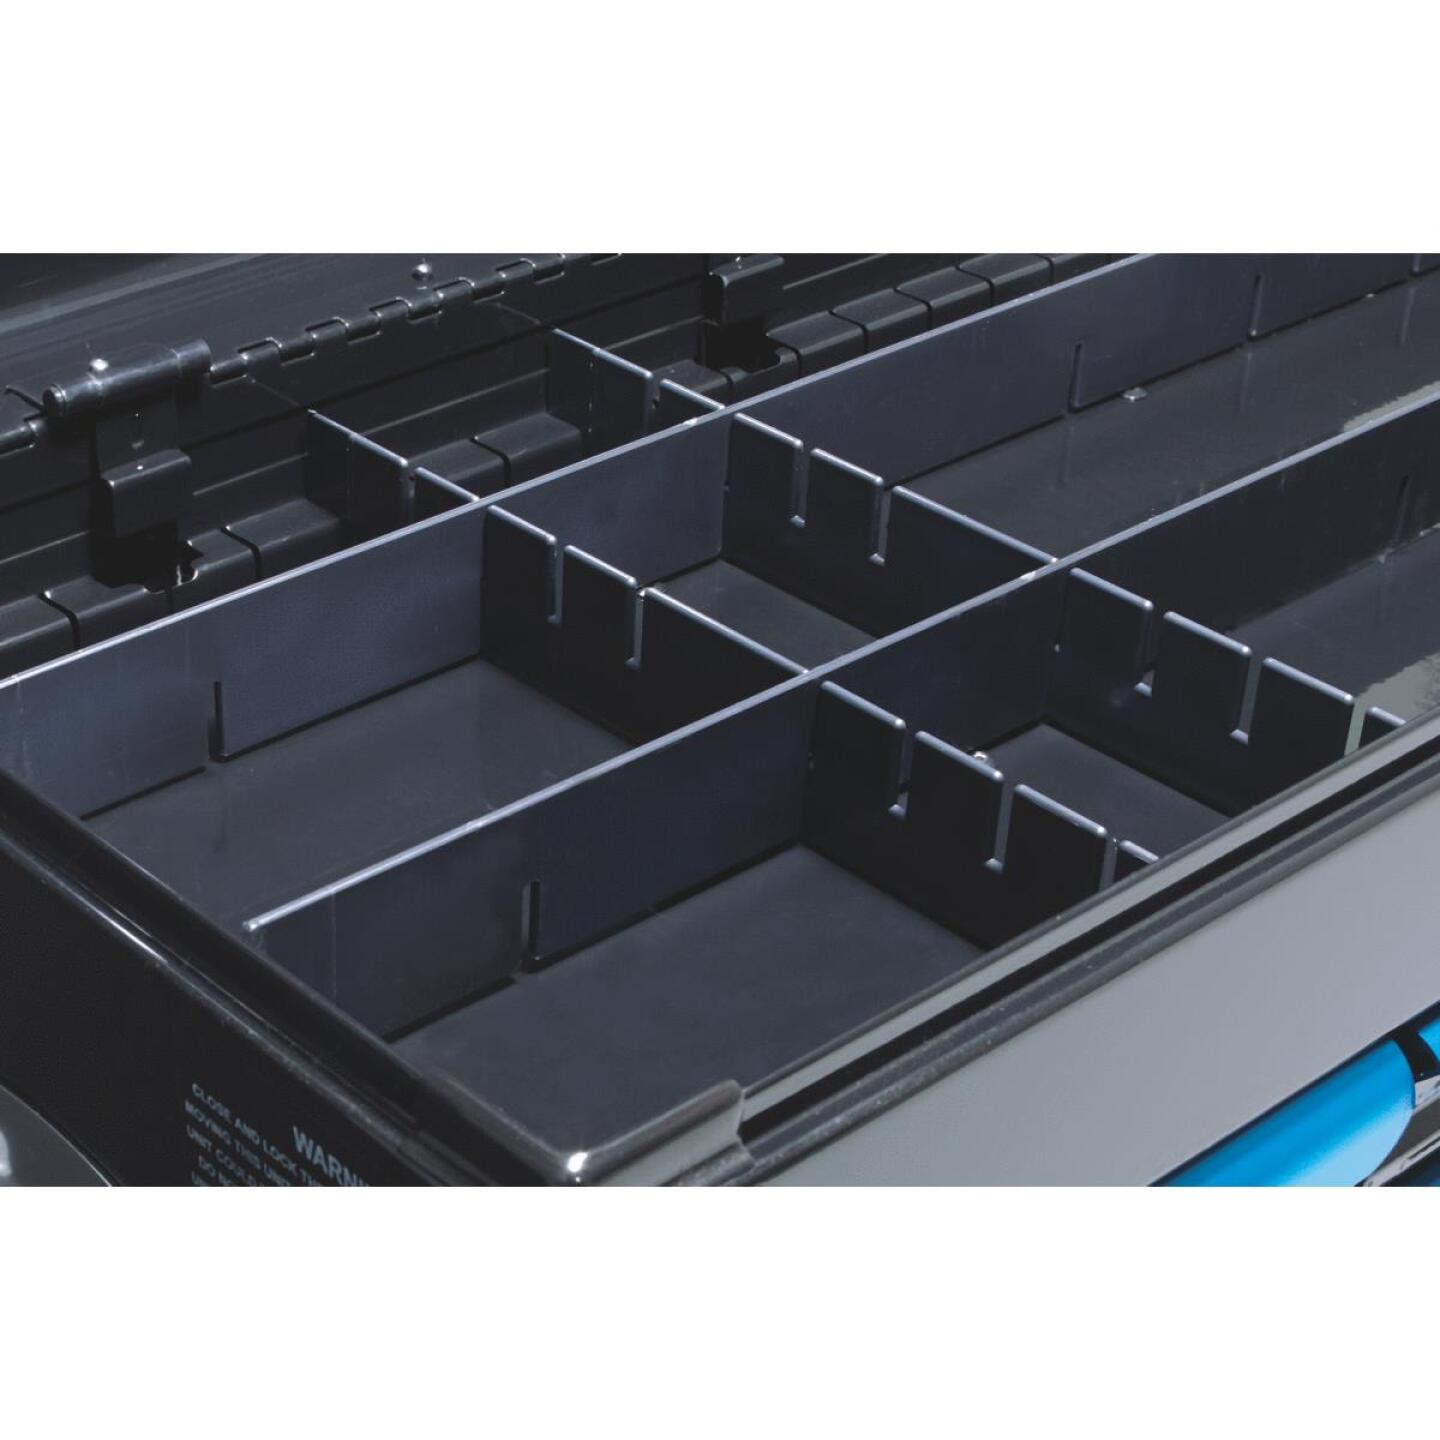 Channellock 26 In. 5-Drawer Tool Roller Cabinet Image 6